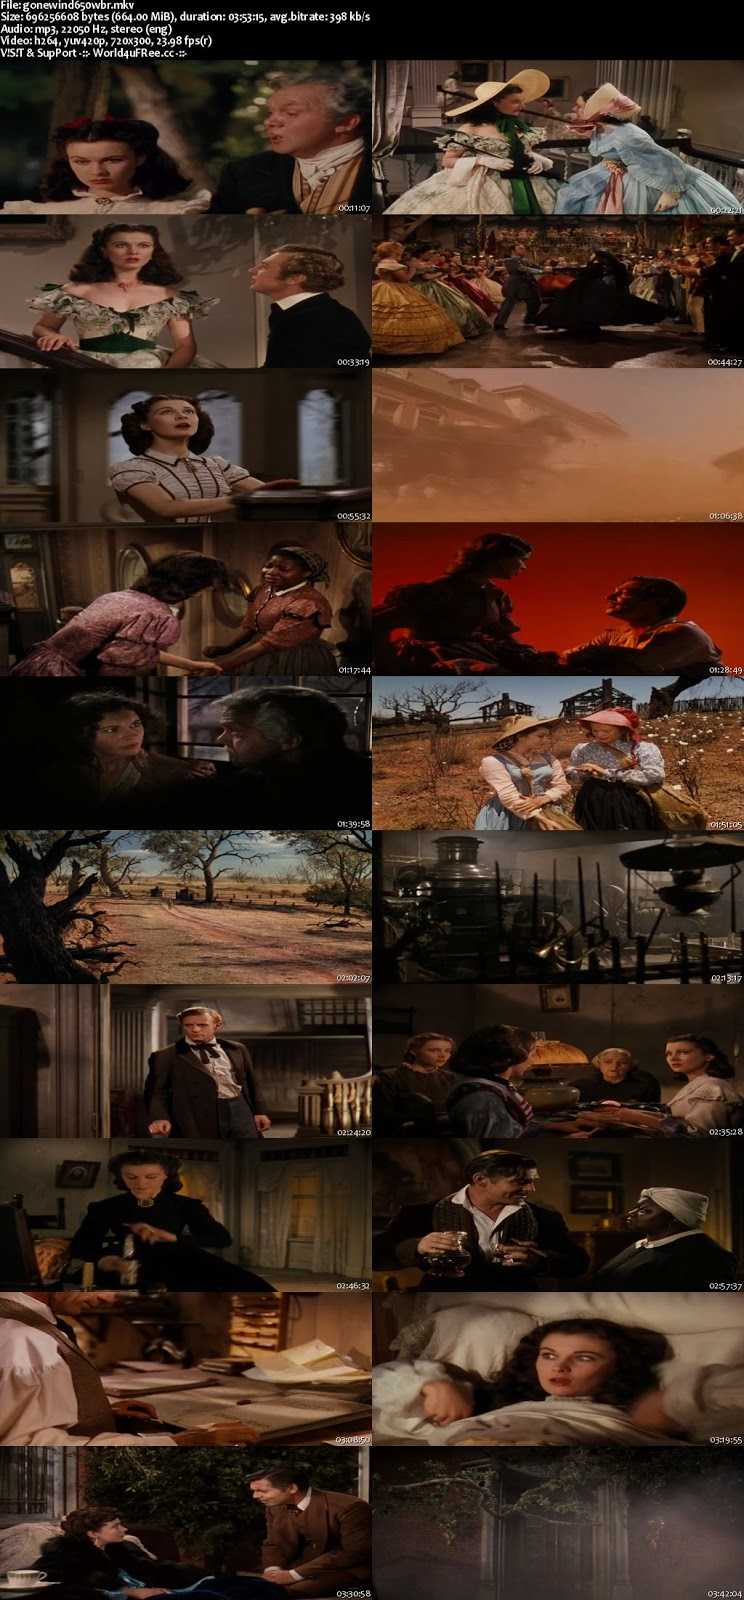 gone with the wind full movie download in hindi 480p